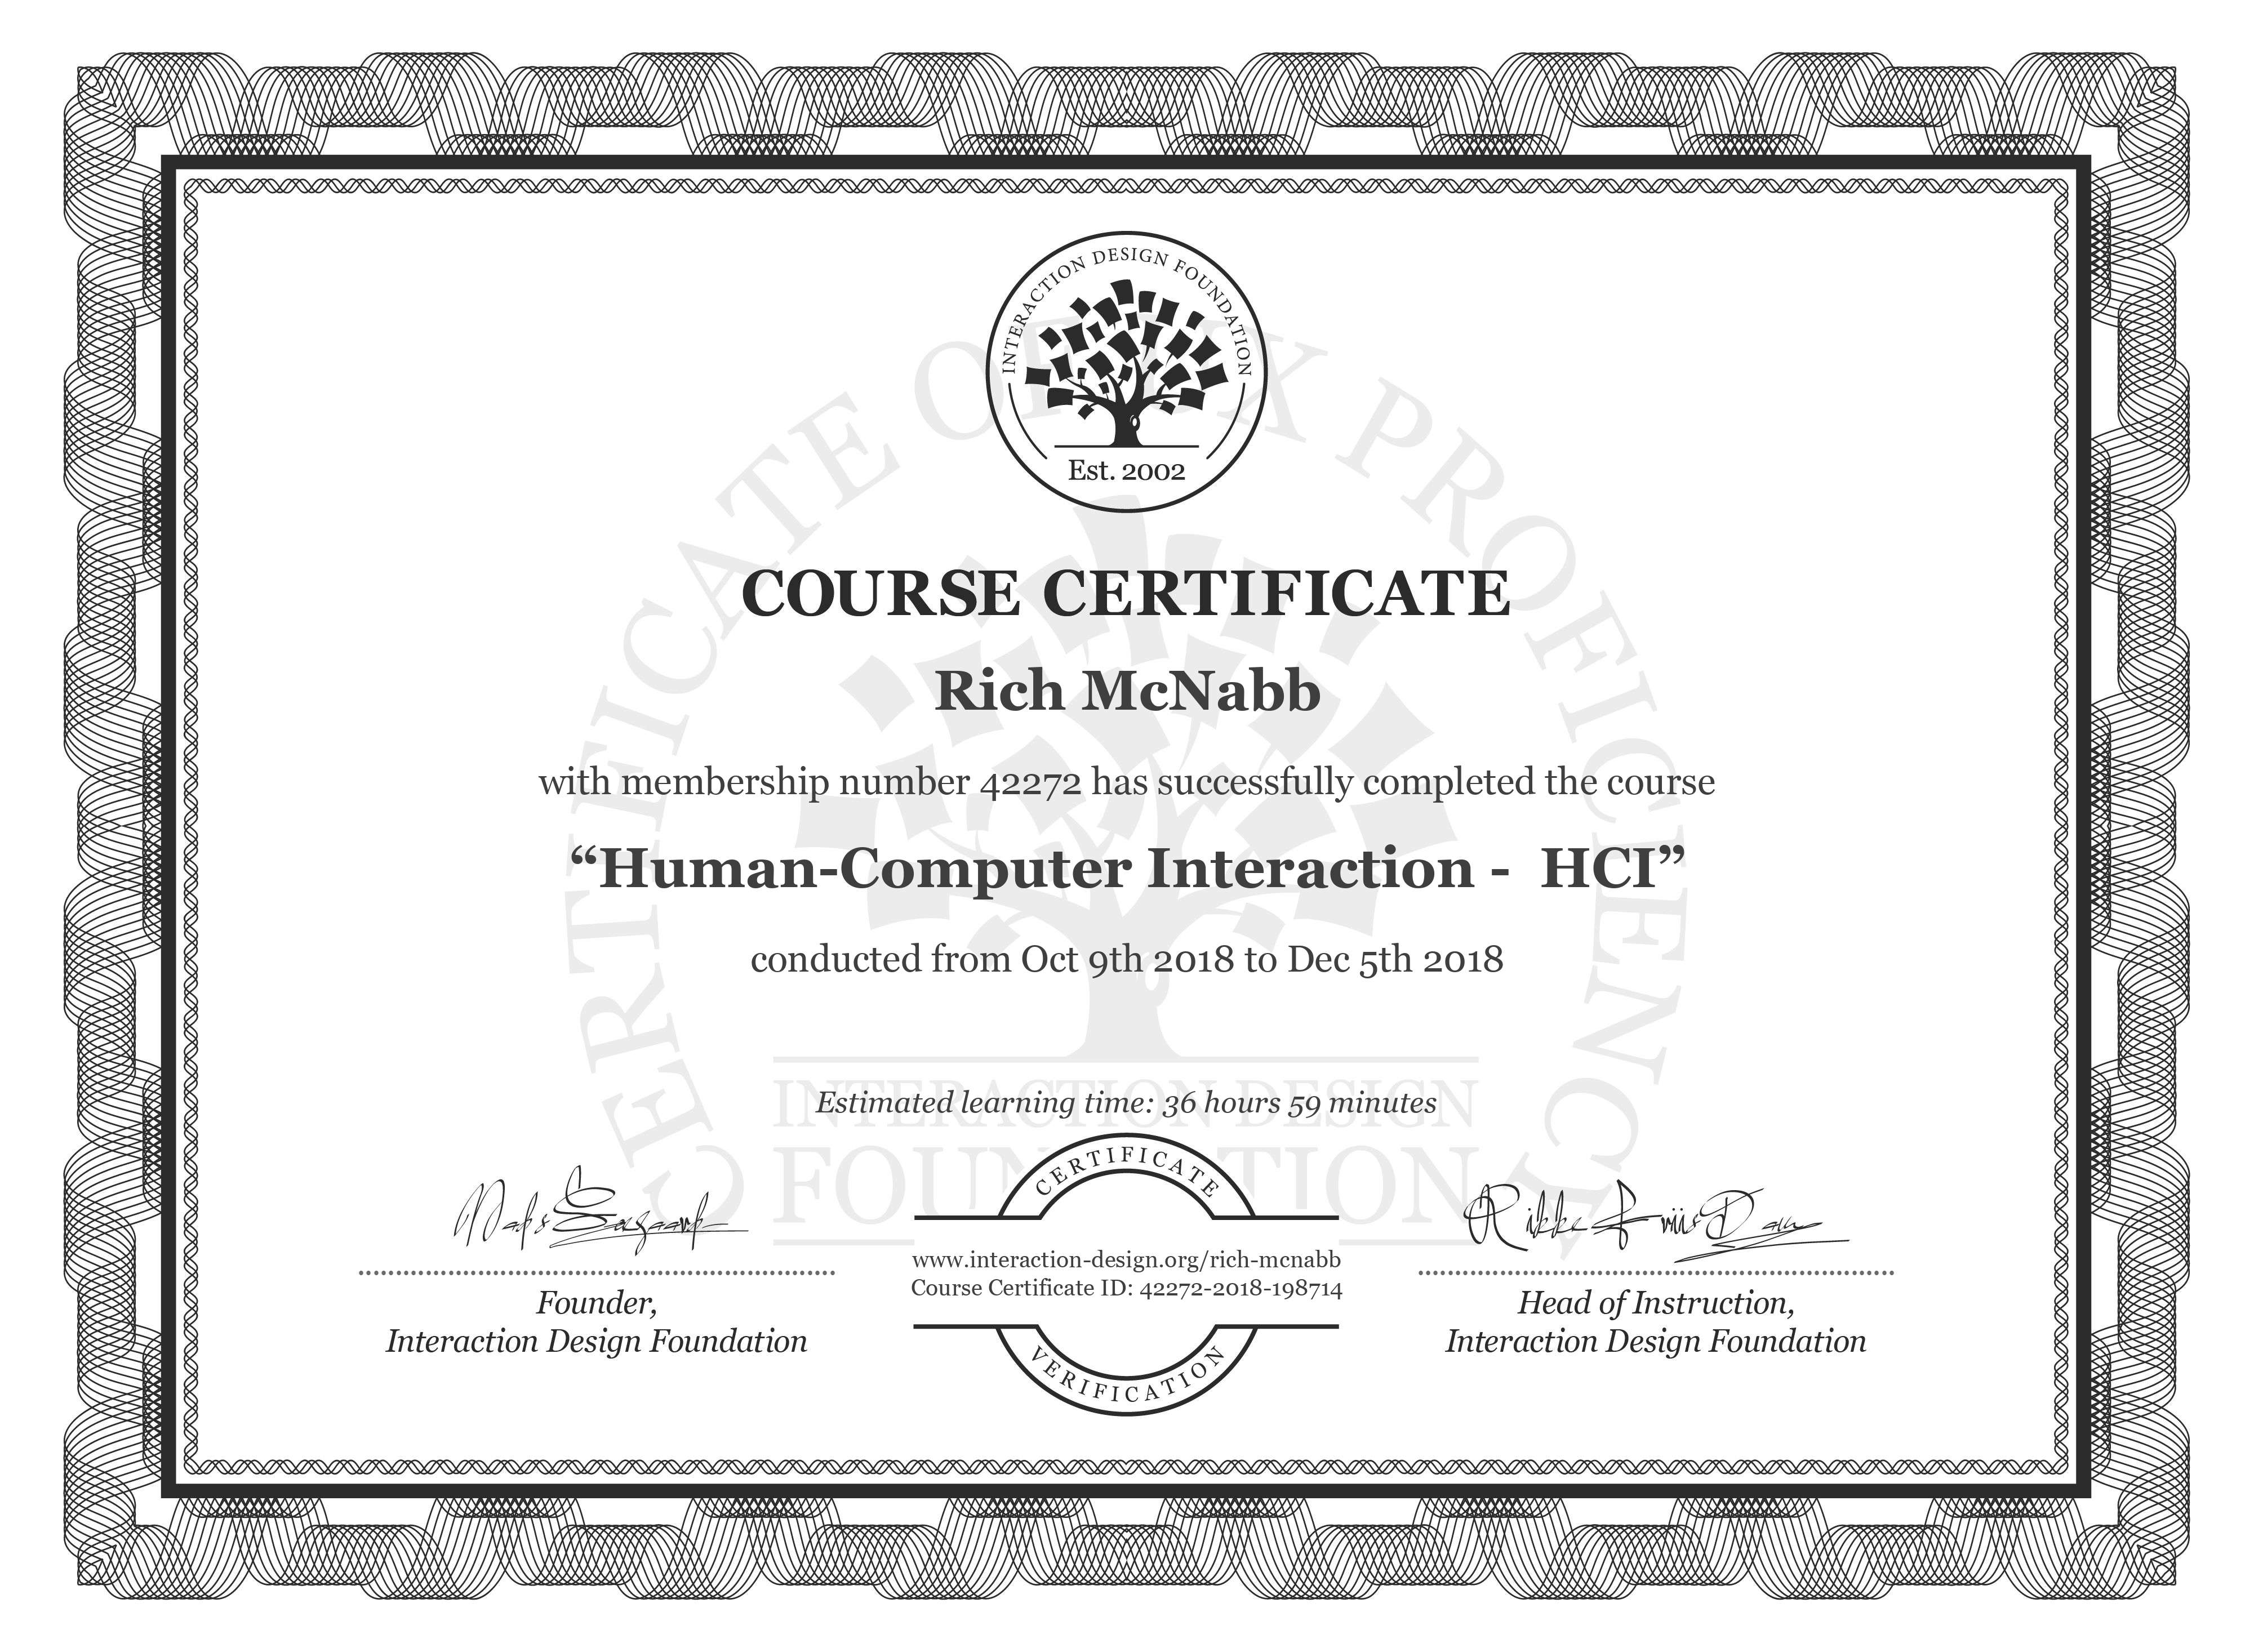 Rich McNabb: Course Certificate - Human-Computer Interaction -  HCI